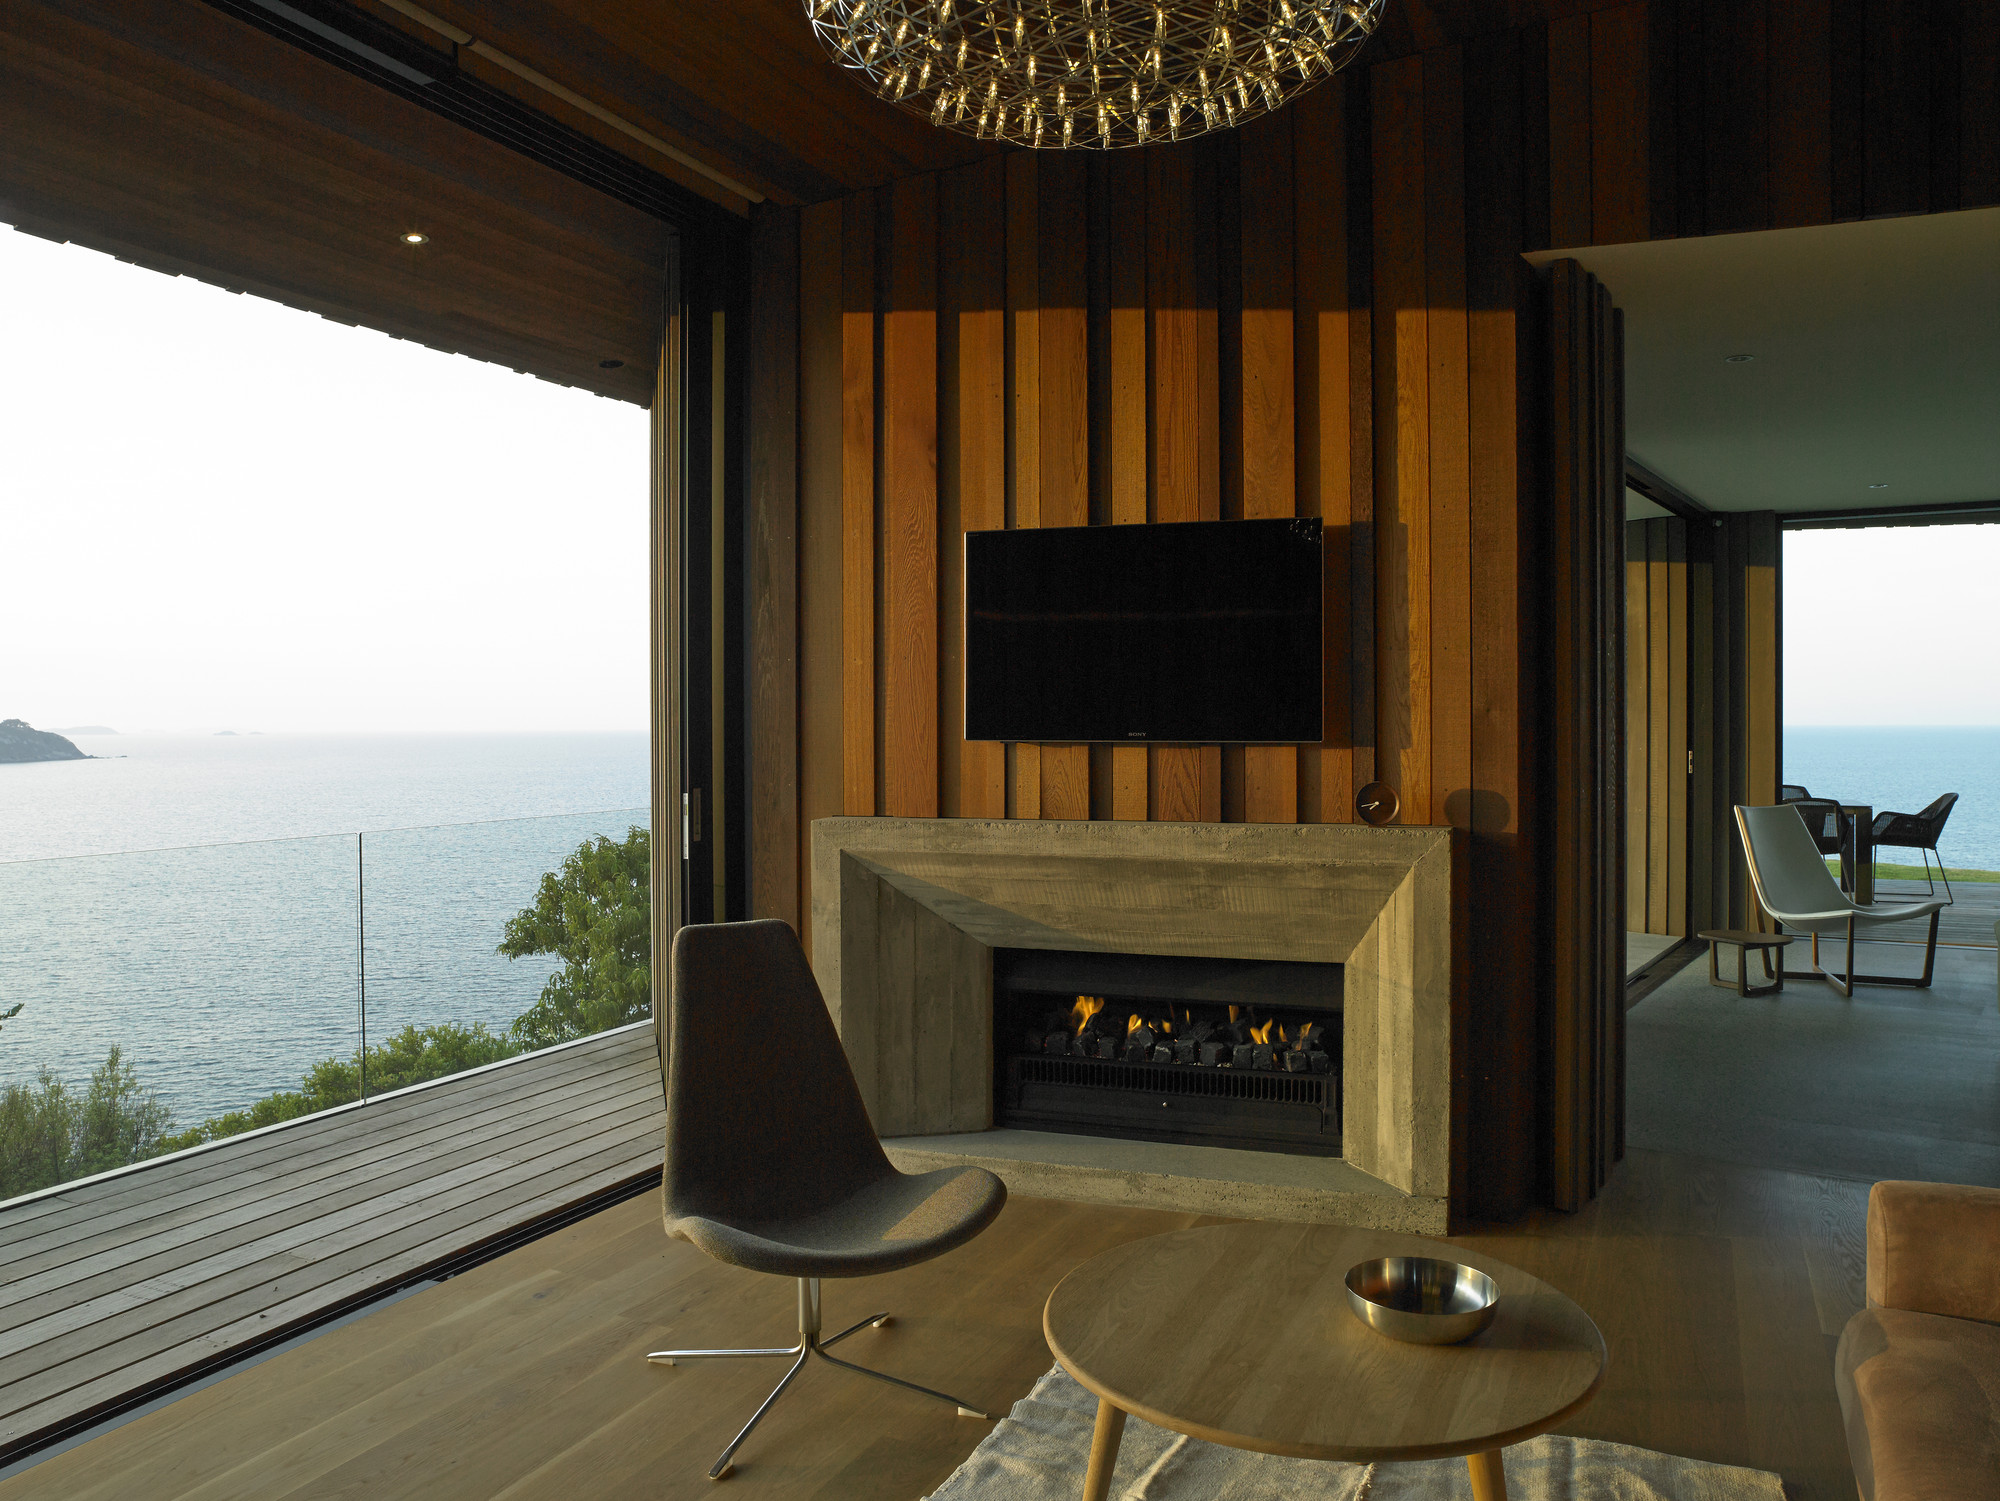 Headland House Stevens Lawson Architects Image C Mark Smith